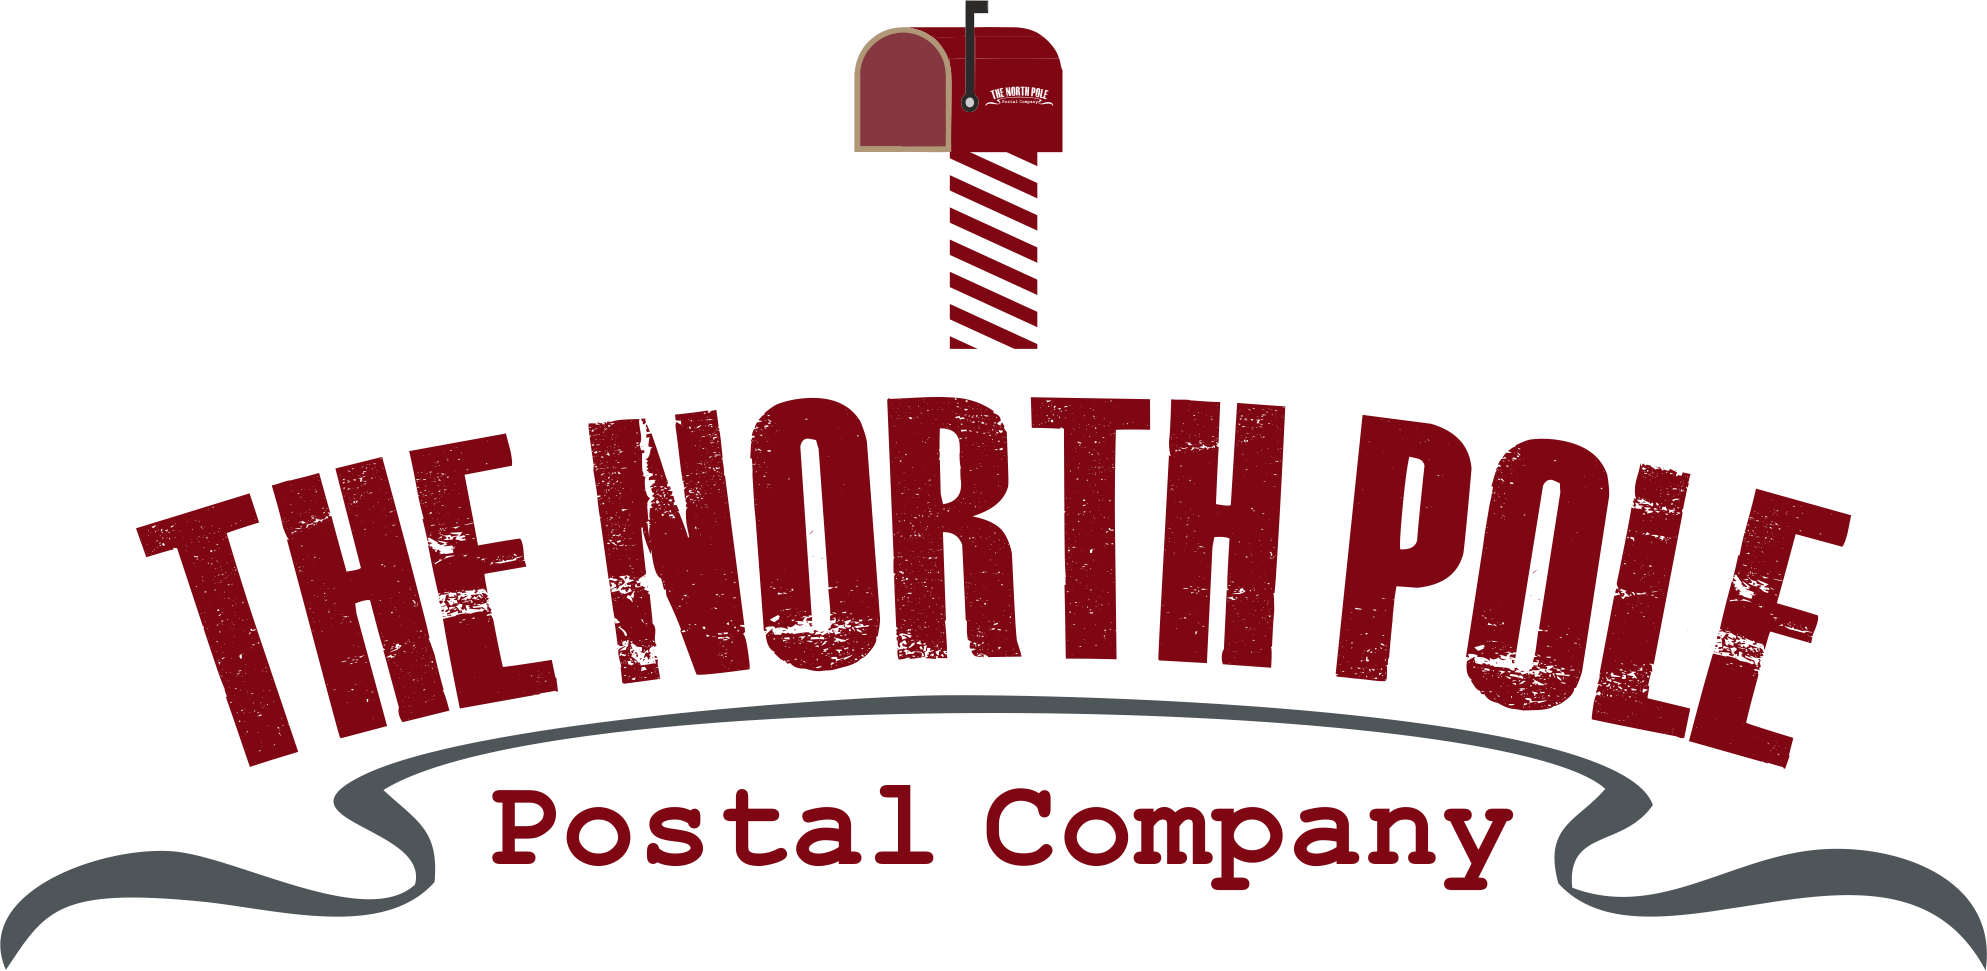 North pole stamp png. Updates the postal company